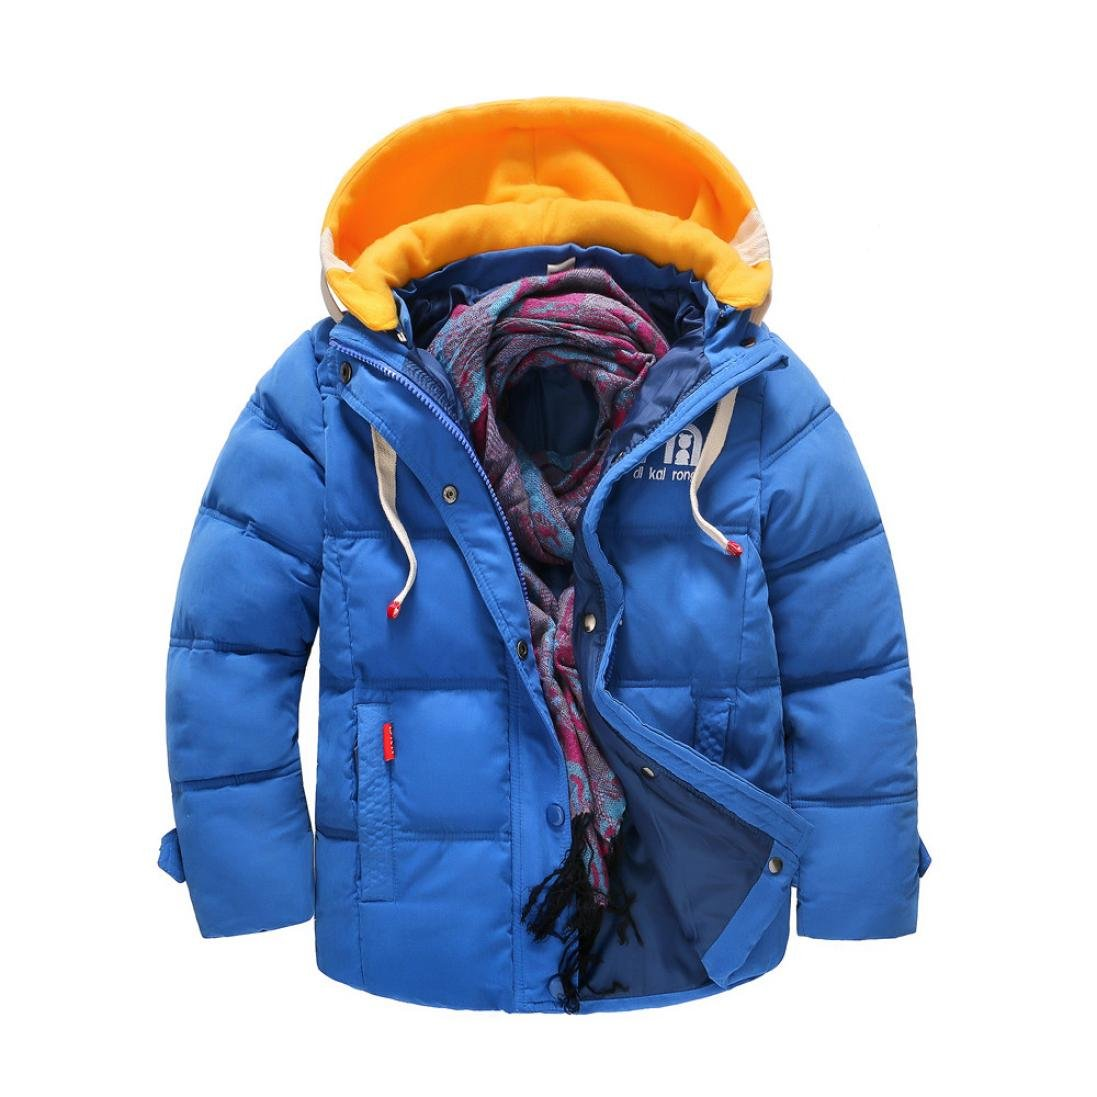 KaloryWee Boys Coats, Boys Winter Coat Quilted Jacket Contract Color Padded Down Detachable Hood Puffer Jacket Snowsuit KaloryWee31